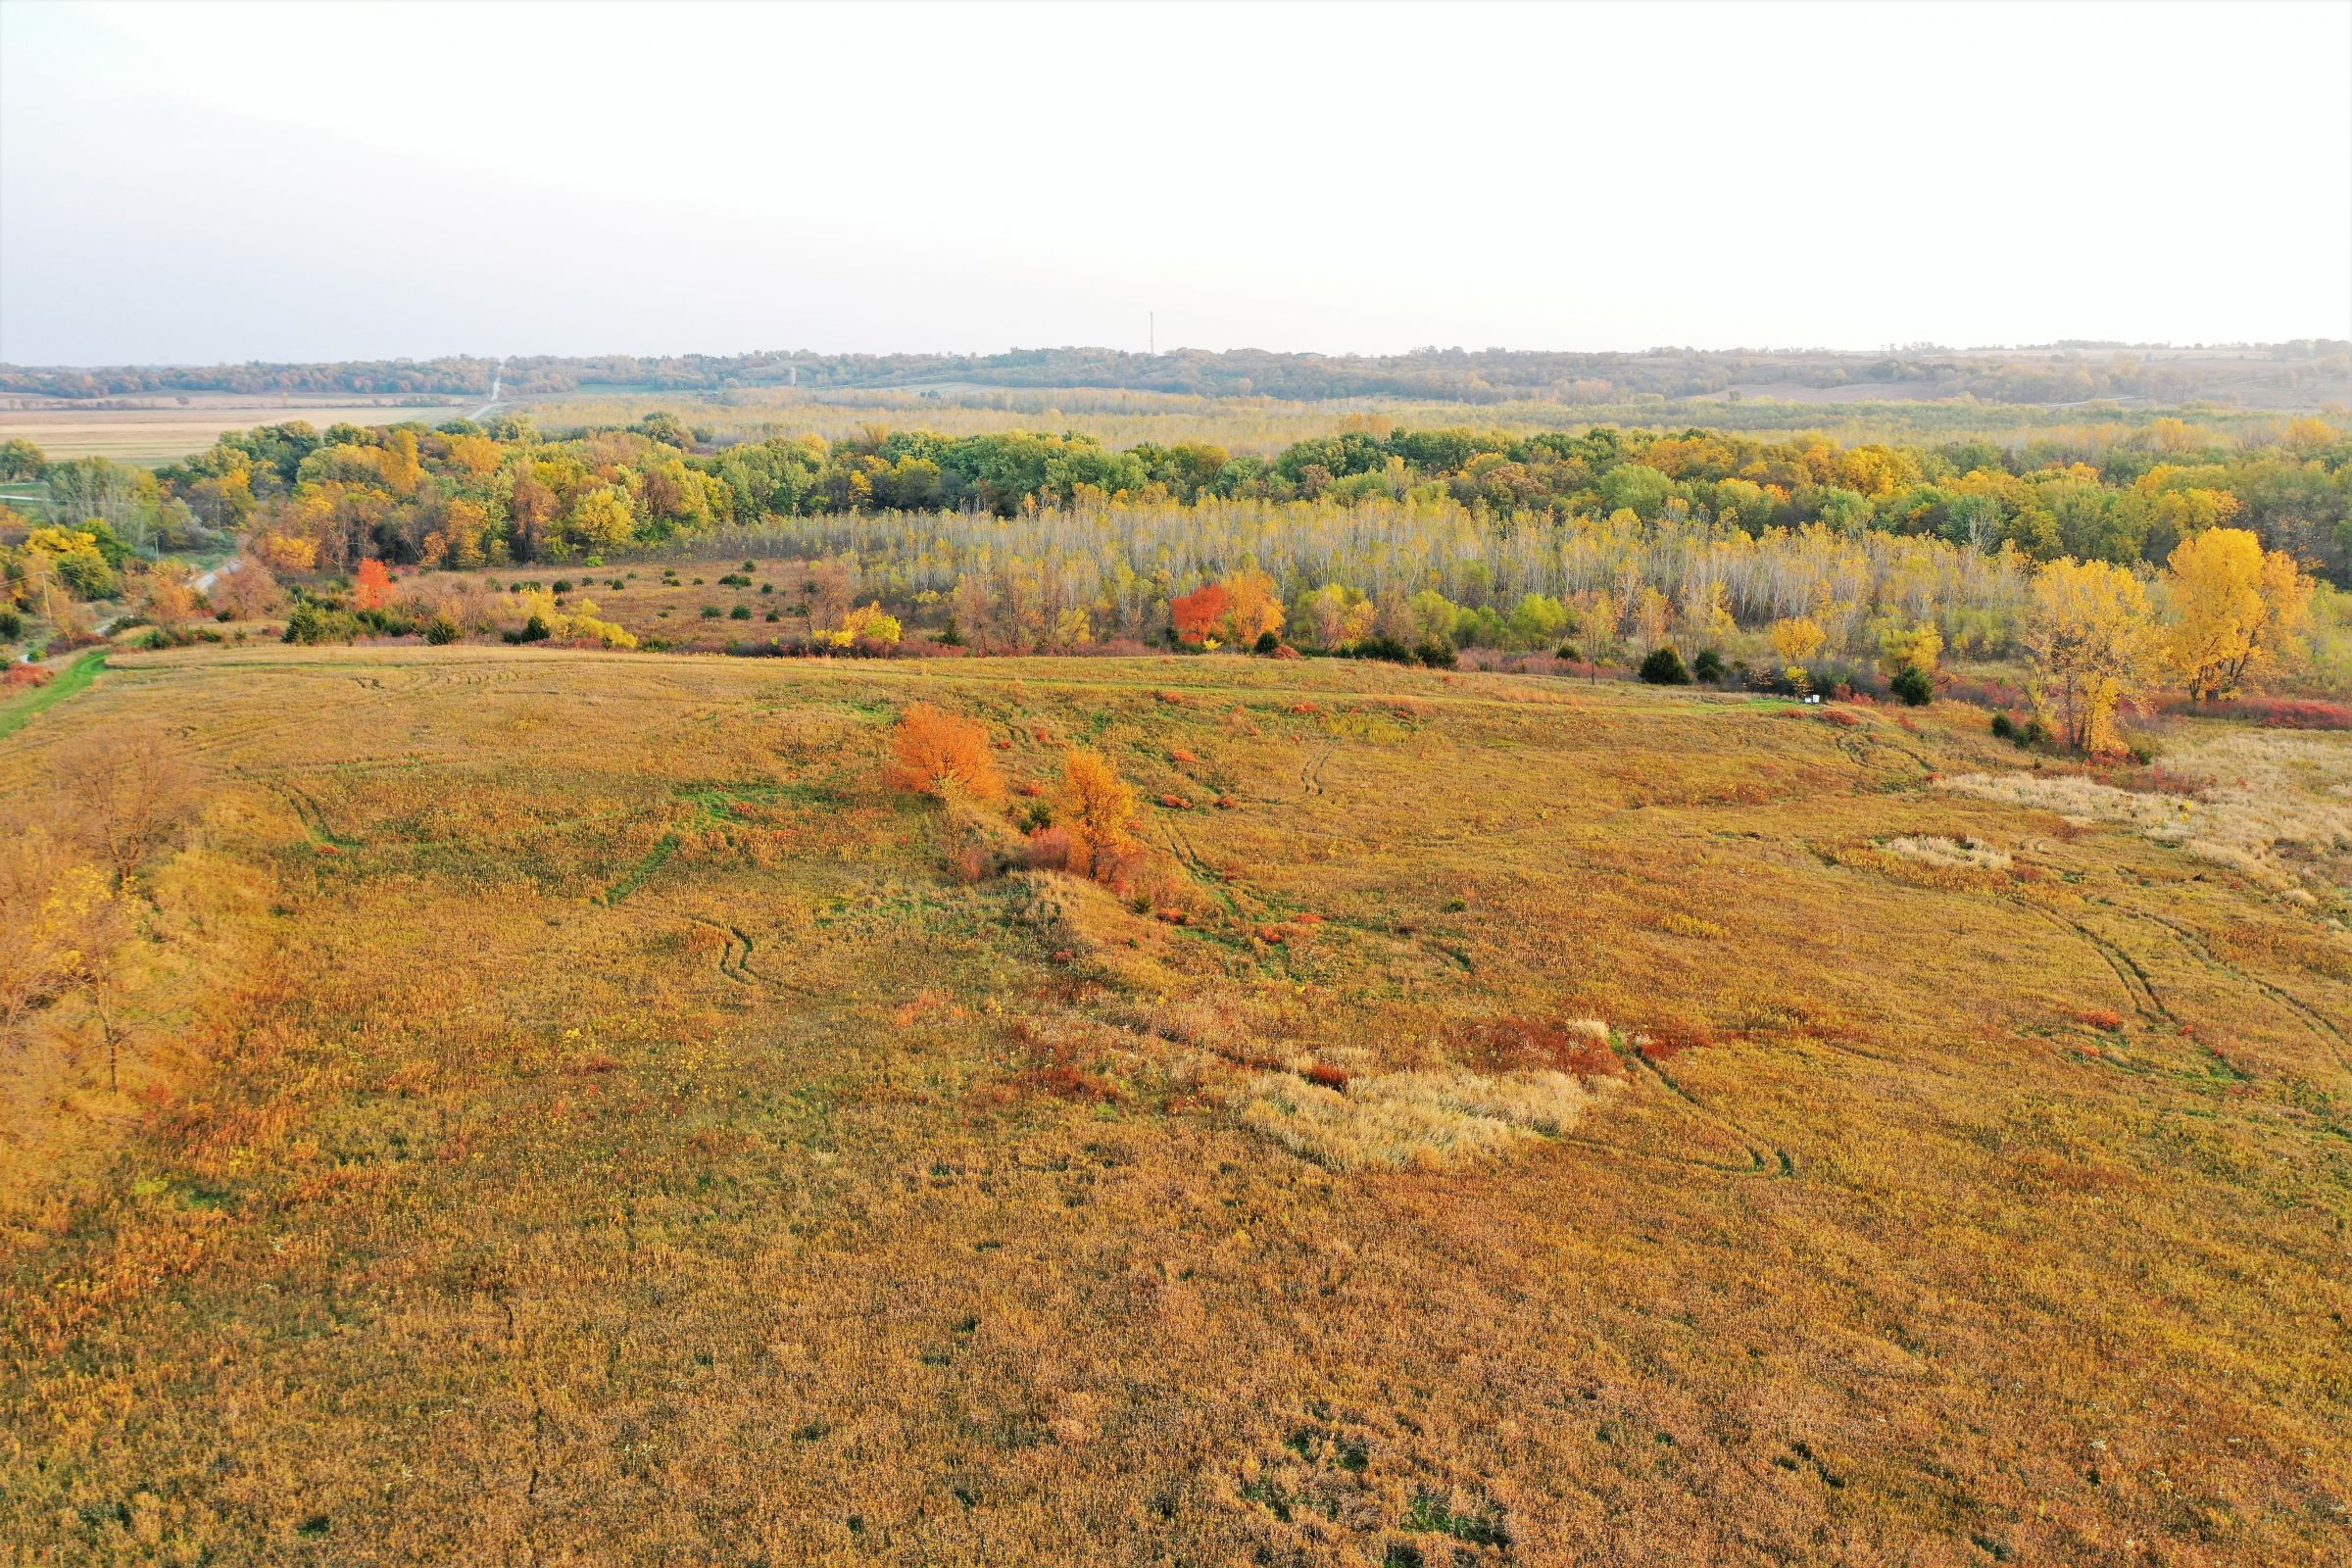 development-land-madison-county-iowa-149-acres-listing-number-15199-3-2020-10-09-133050.jpg